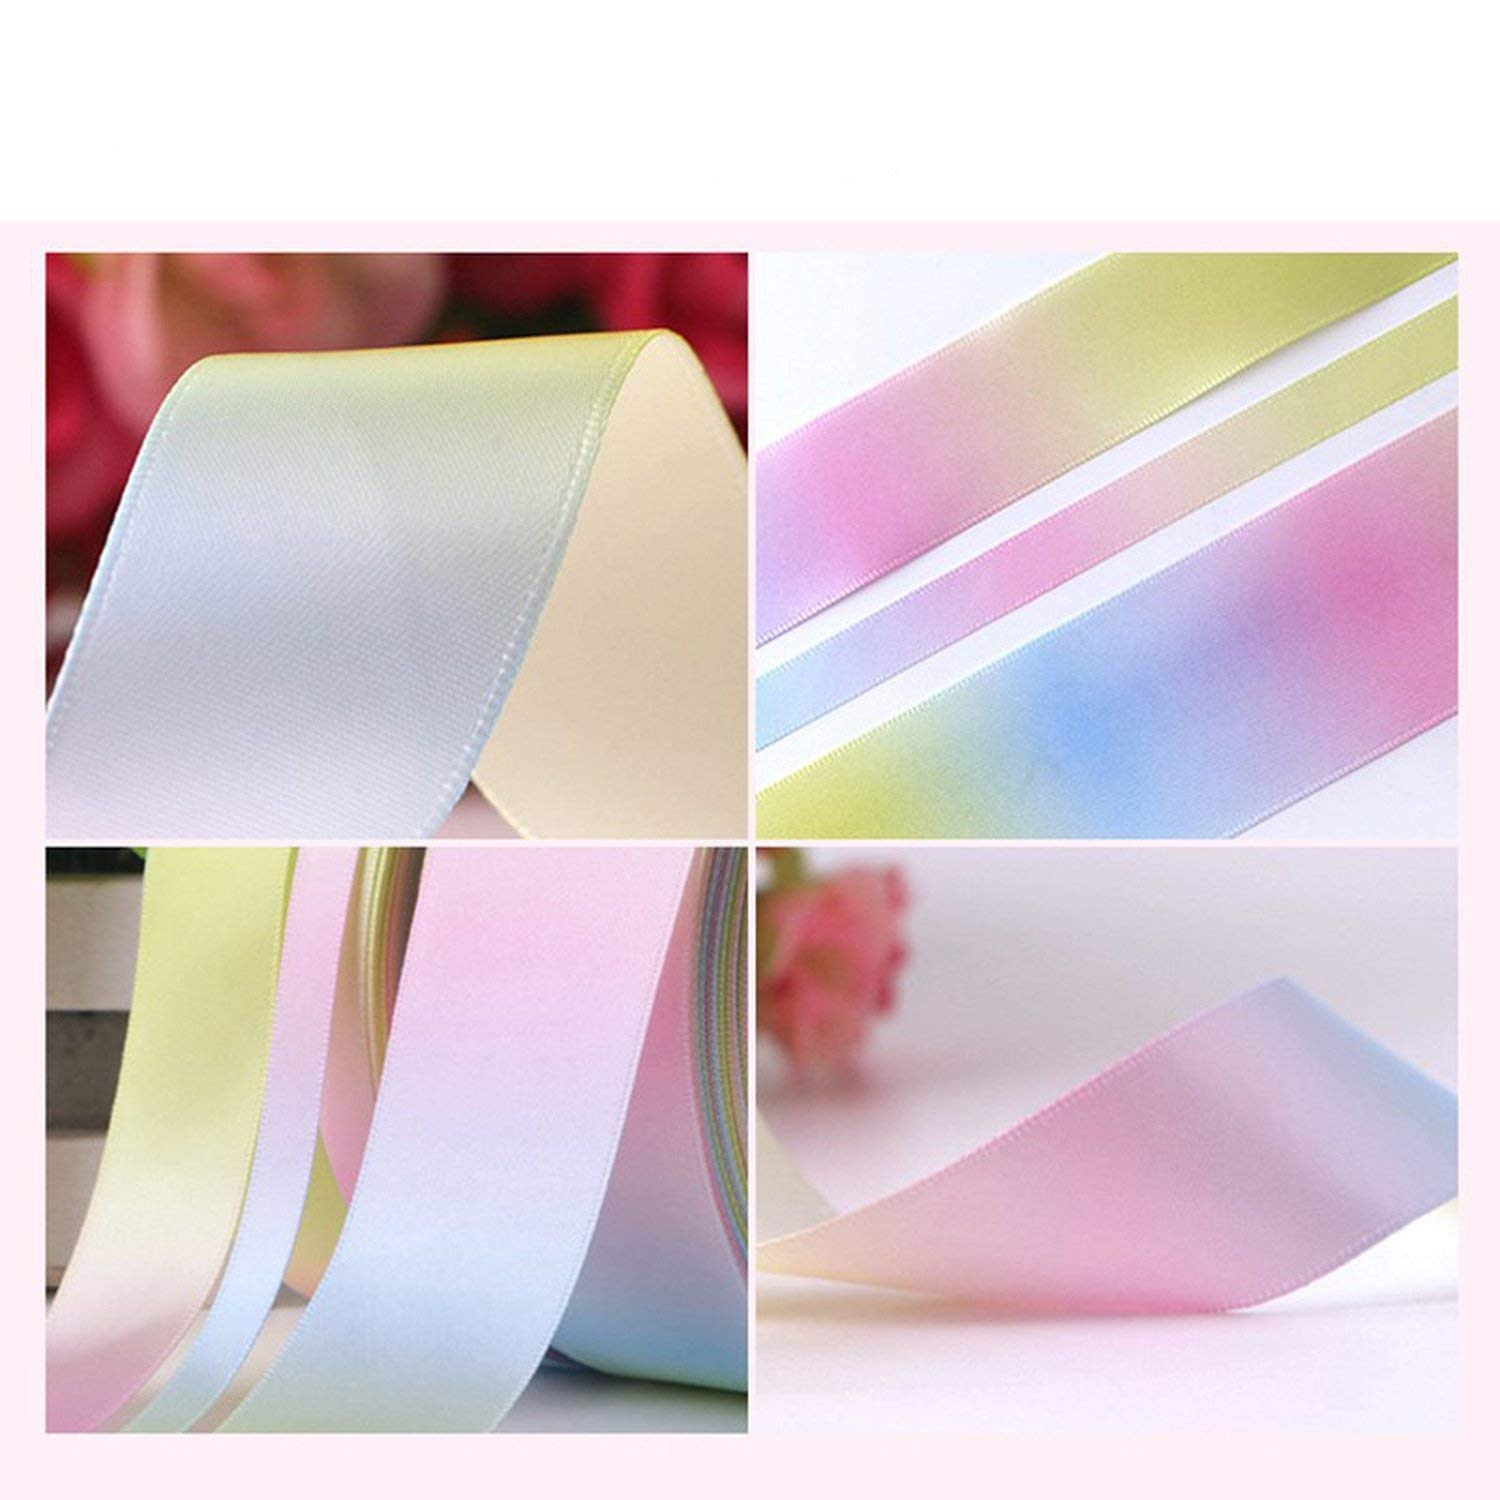 Party Streamers Rainbow Ribbon Printed Polyester Satin Ribbons Handmade Materials,50mm by AYO-LE streamers (Image #4)